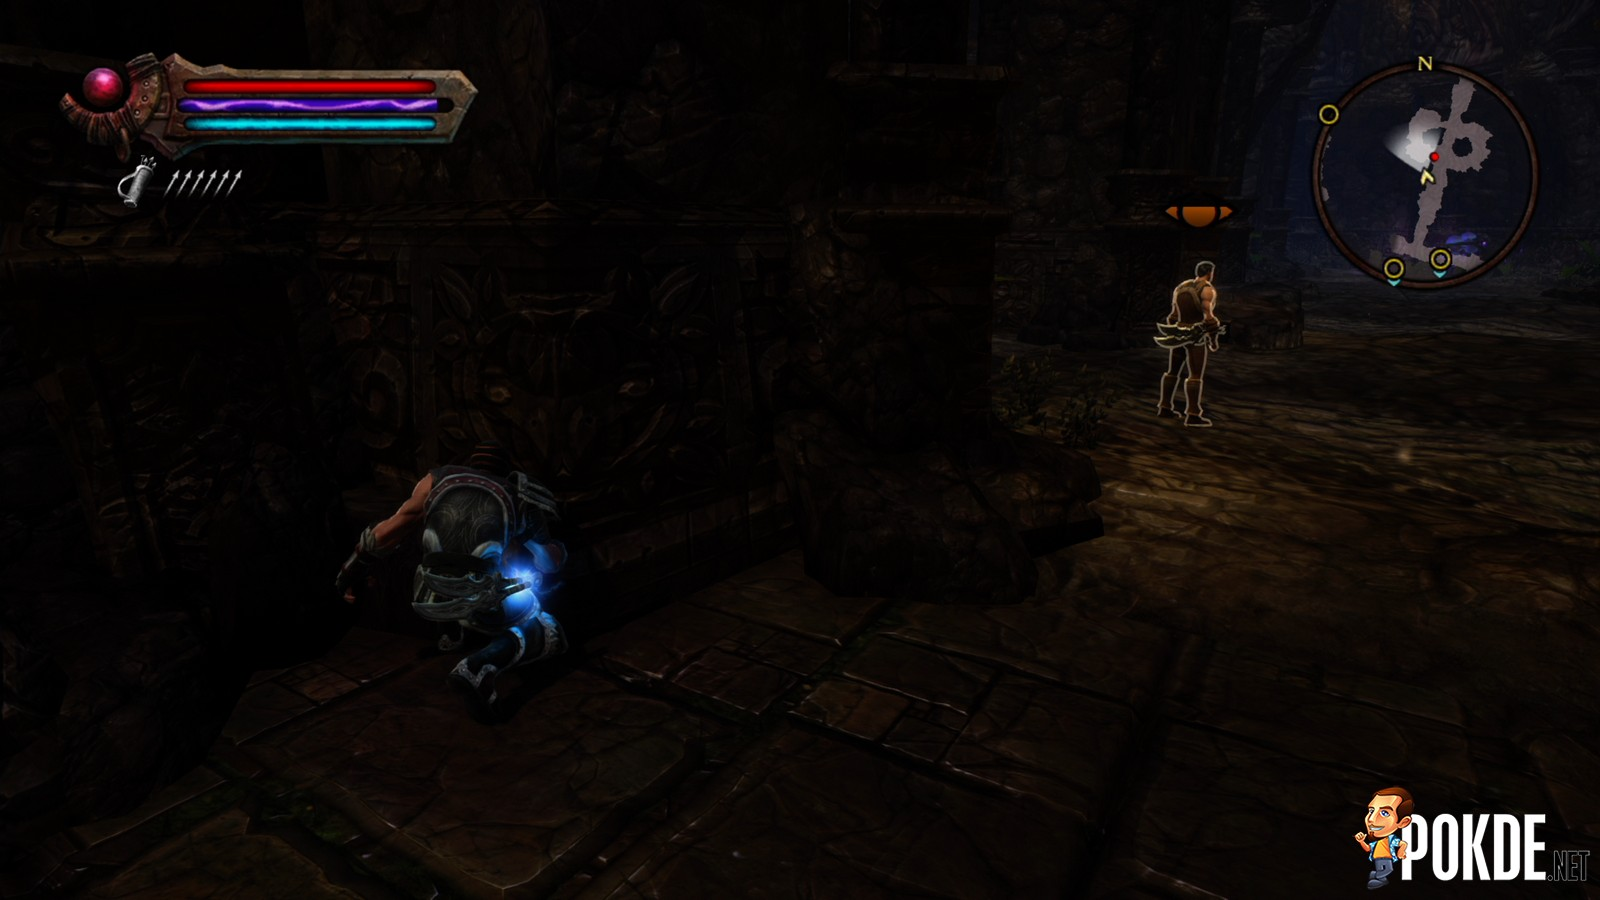 Kingdoms of Amalur Re-Reckoning Review - Good for Newcomers, Not For Revisits 18